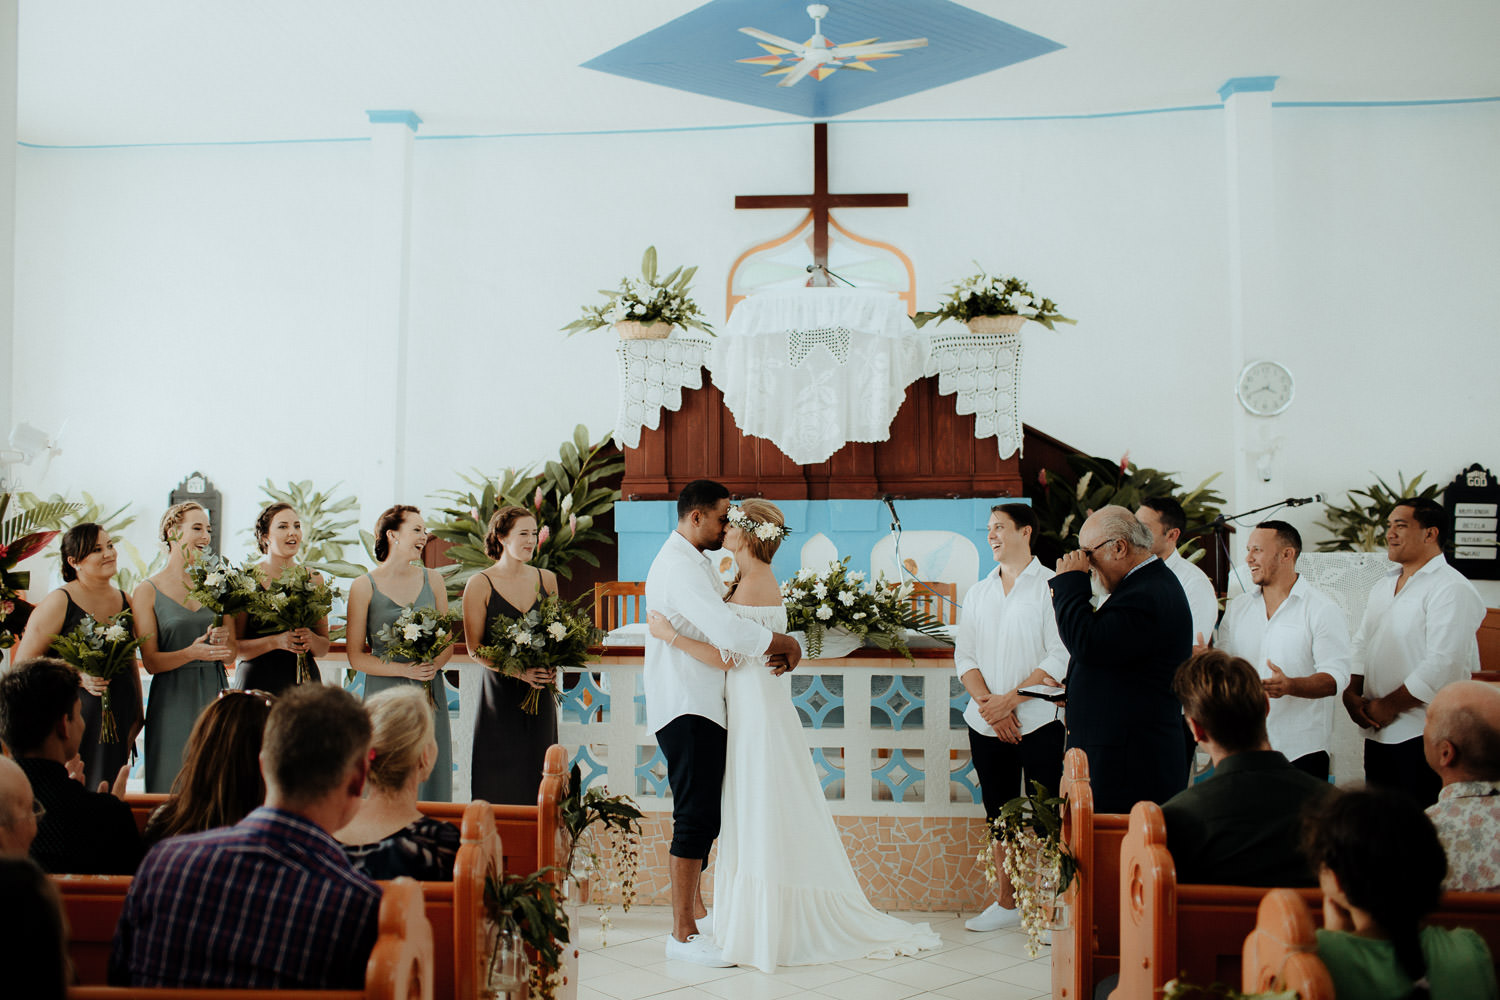 Rorotongan-wedding-photographer-24396.jpg